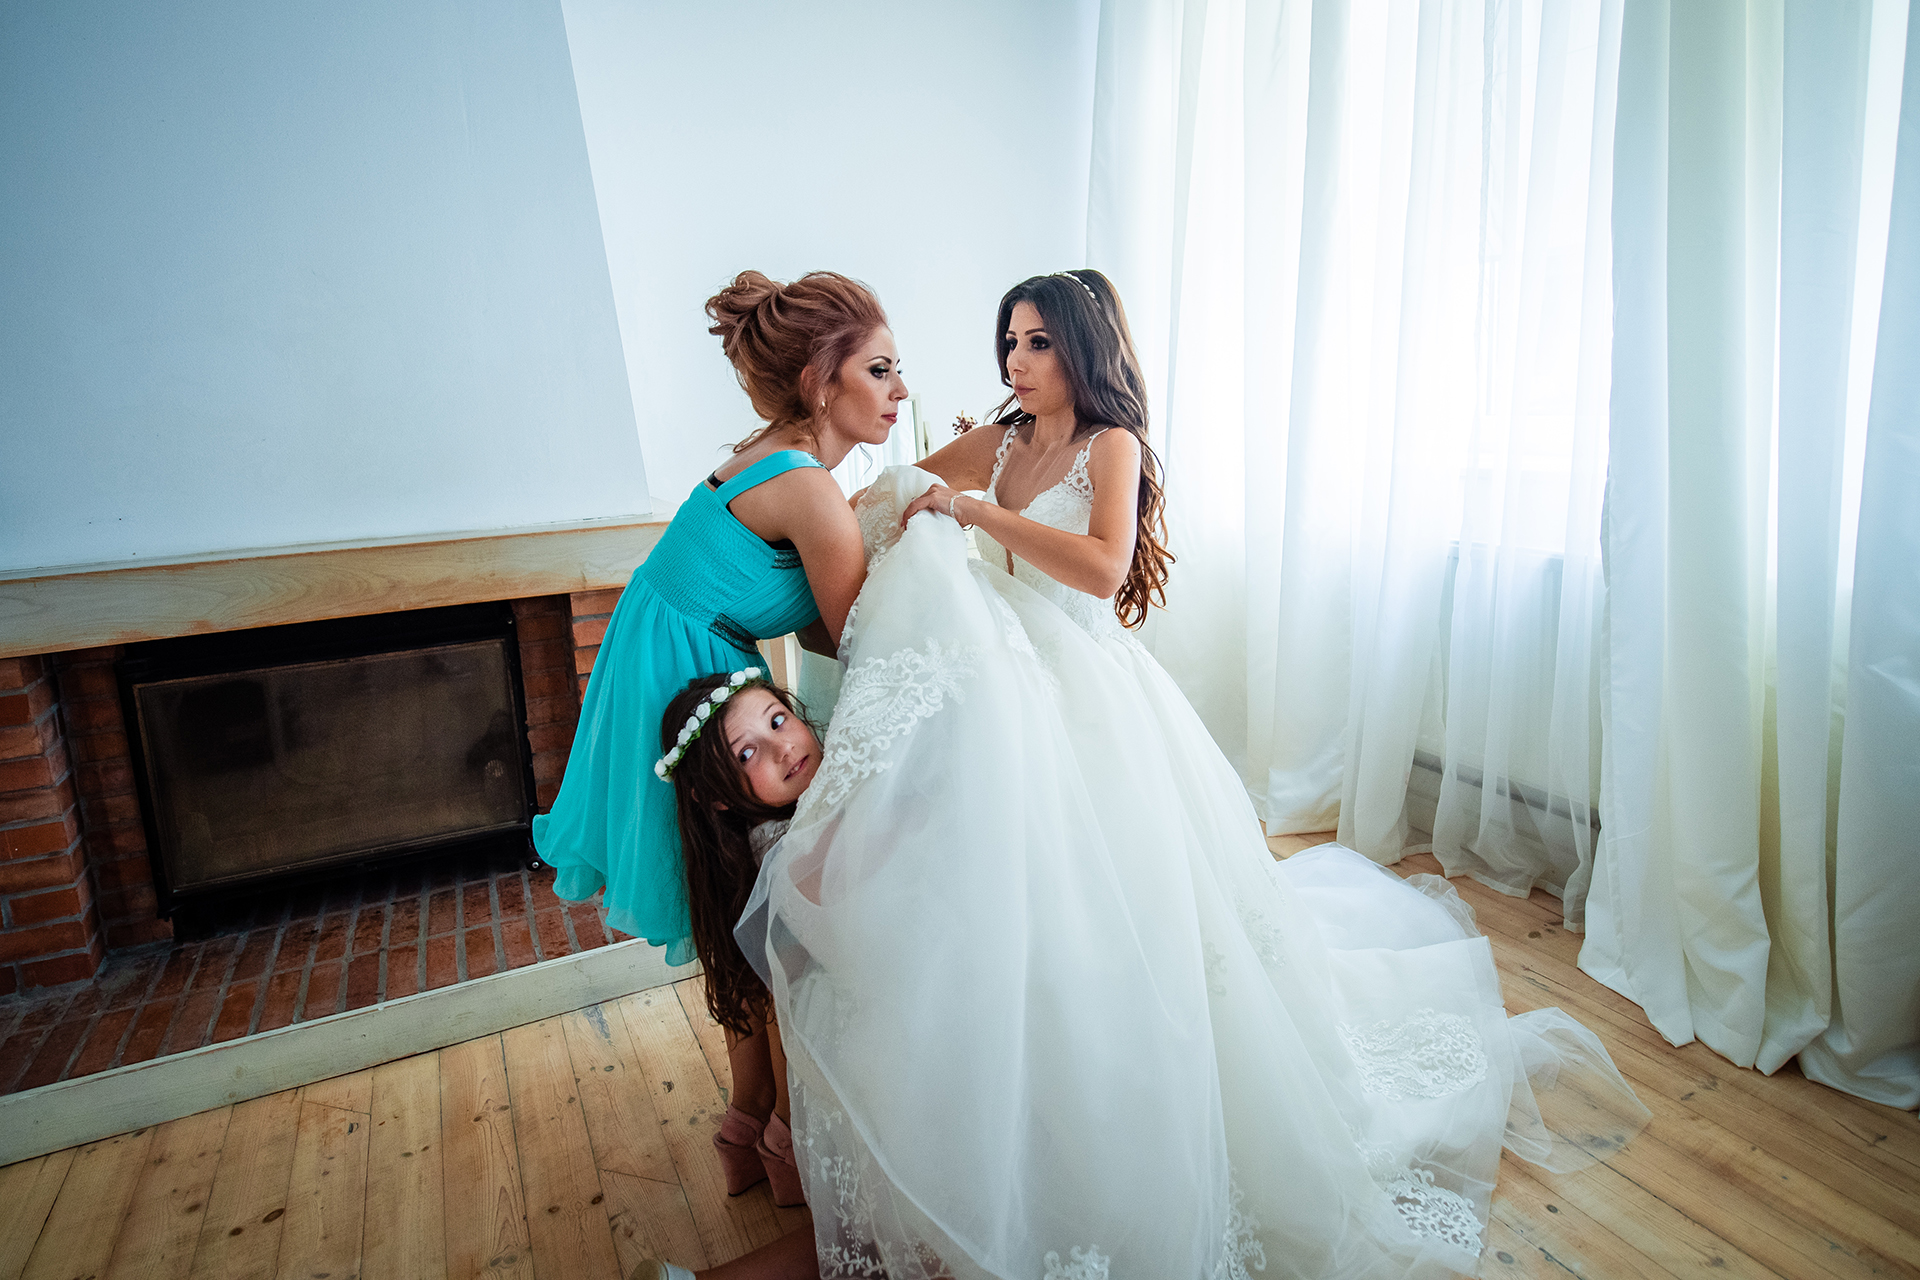 Best Guest House Ongal Elopement Photographer in Bulgaria | The Maid of Honor and one of the flower girls helps the bride